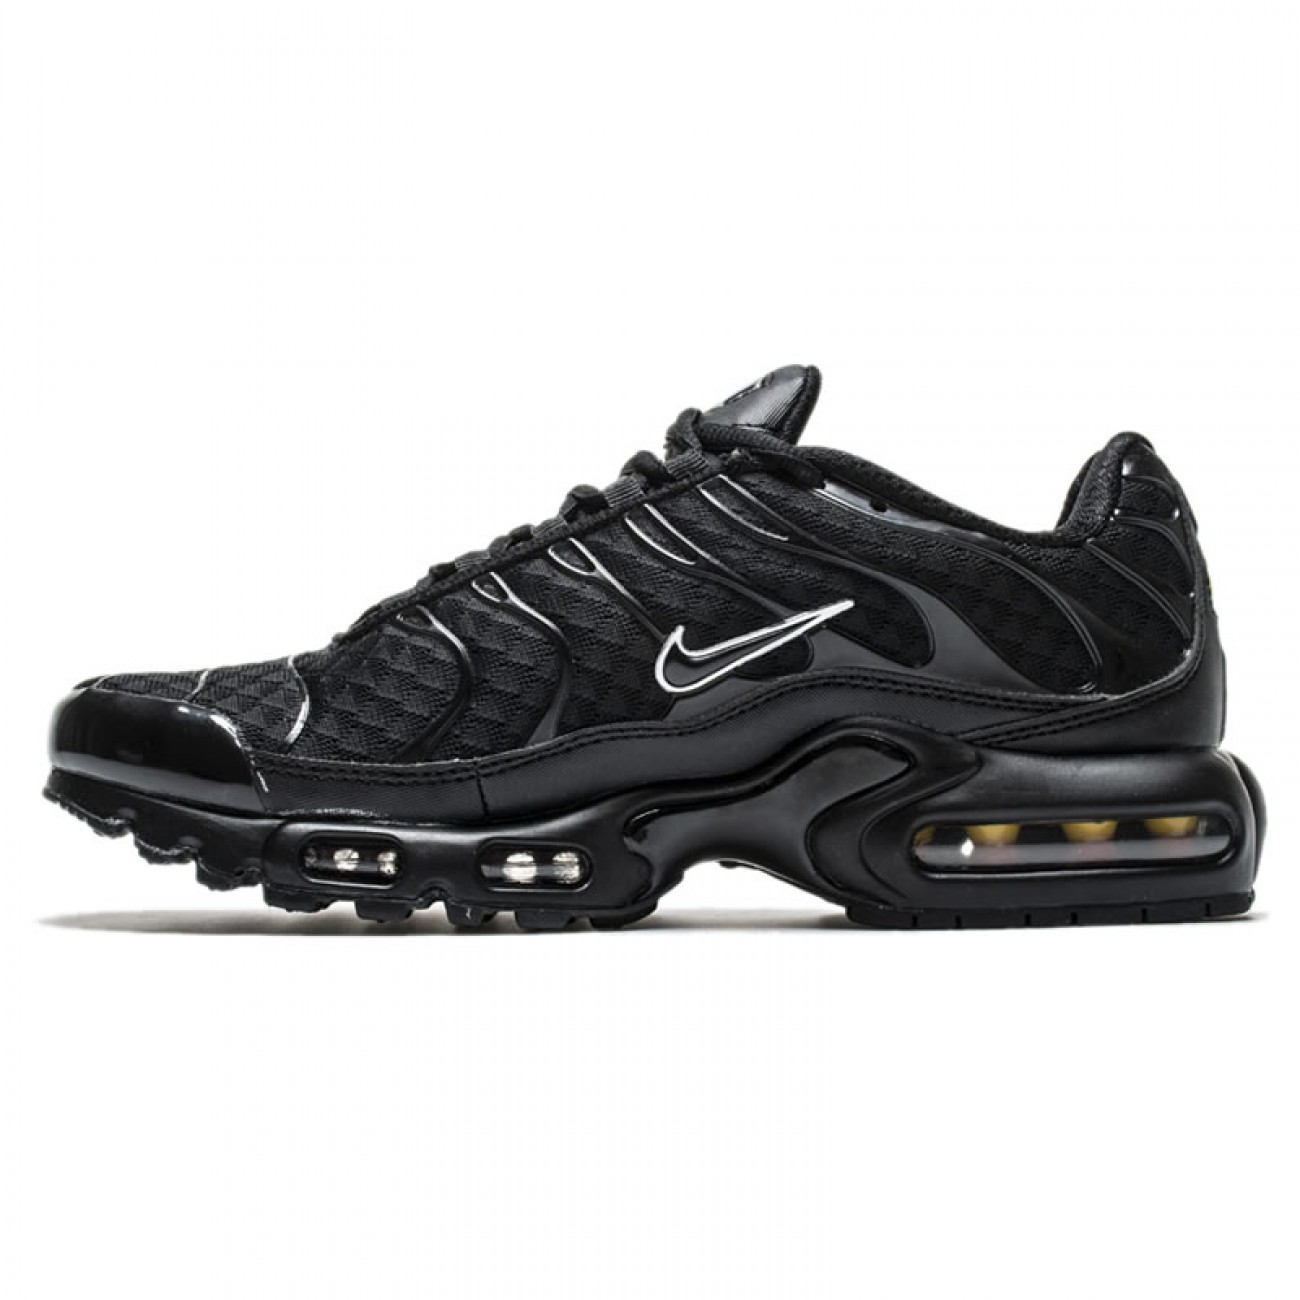 separation shoes 77595 3f30c ... ireland us 85 nike air max plus tn ultra all black footarget 7e475 f5d18